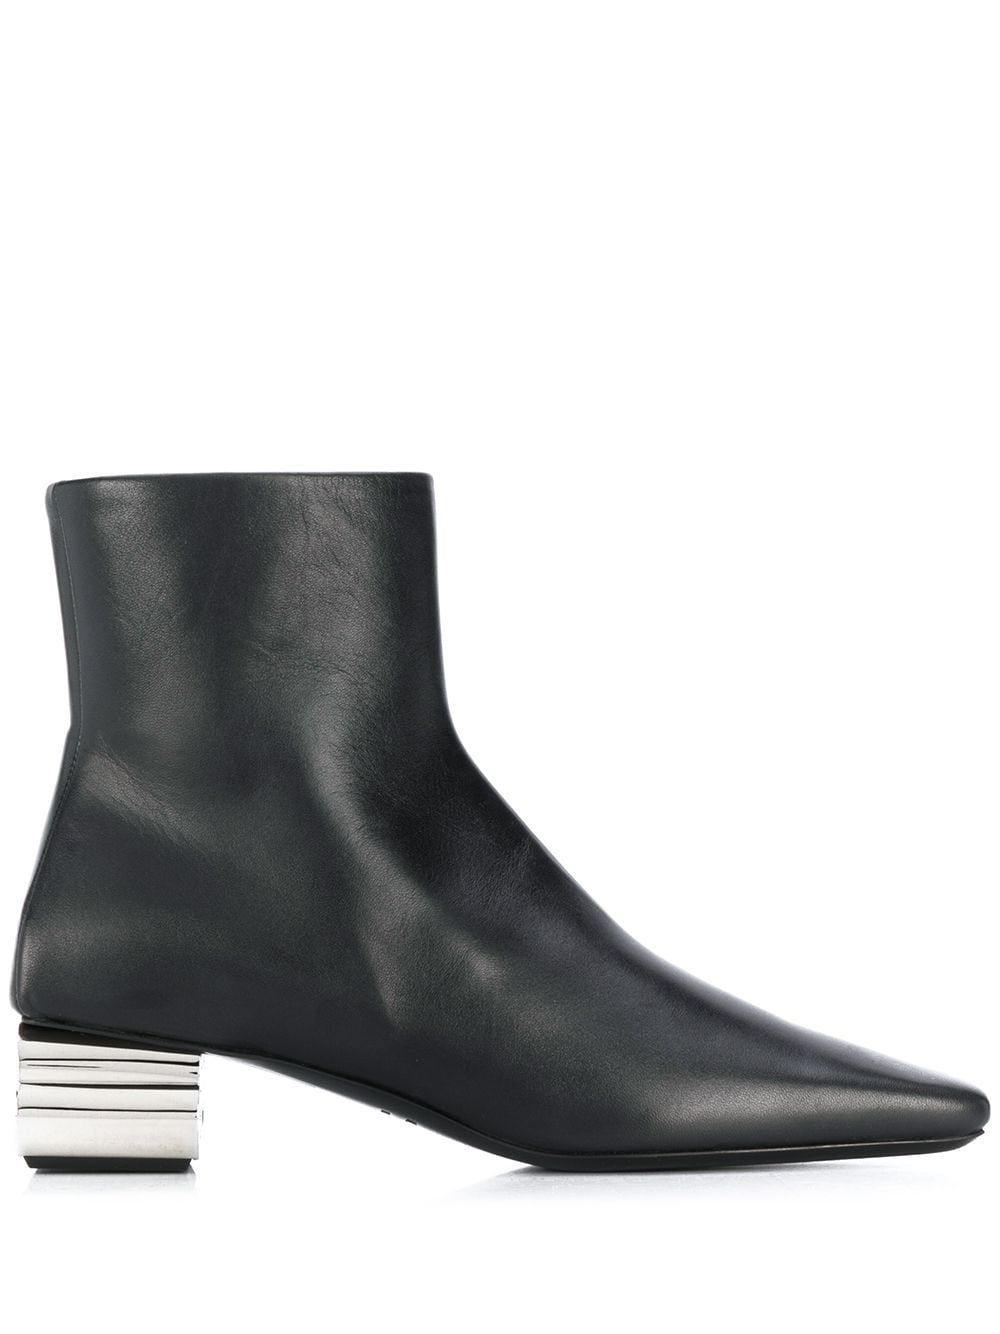 BALENCIAGA WOMEN'S 590984WA8F31081 BLACK LEATHER ANKLE BOOTS